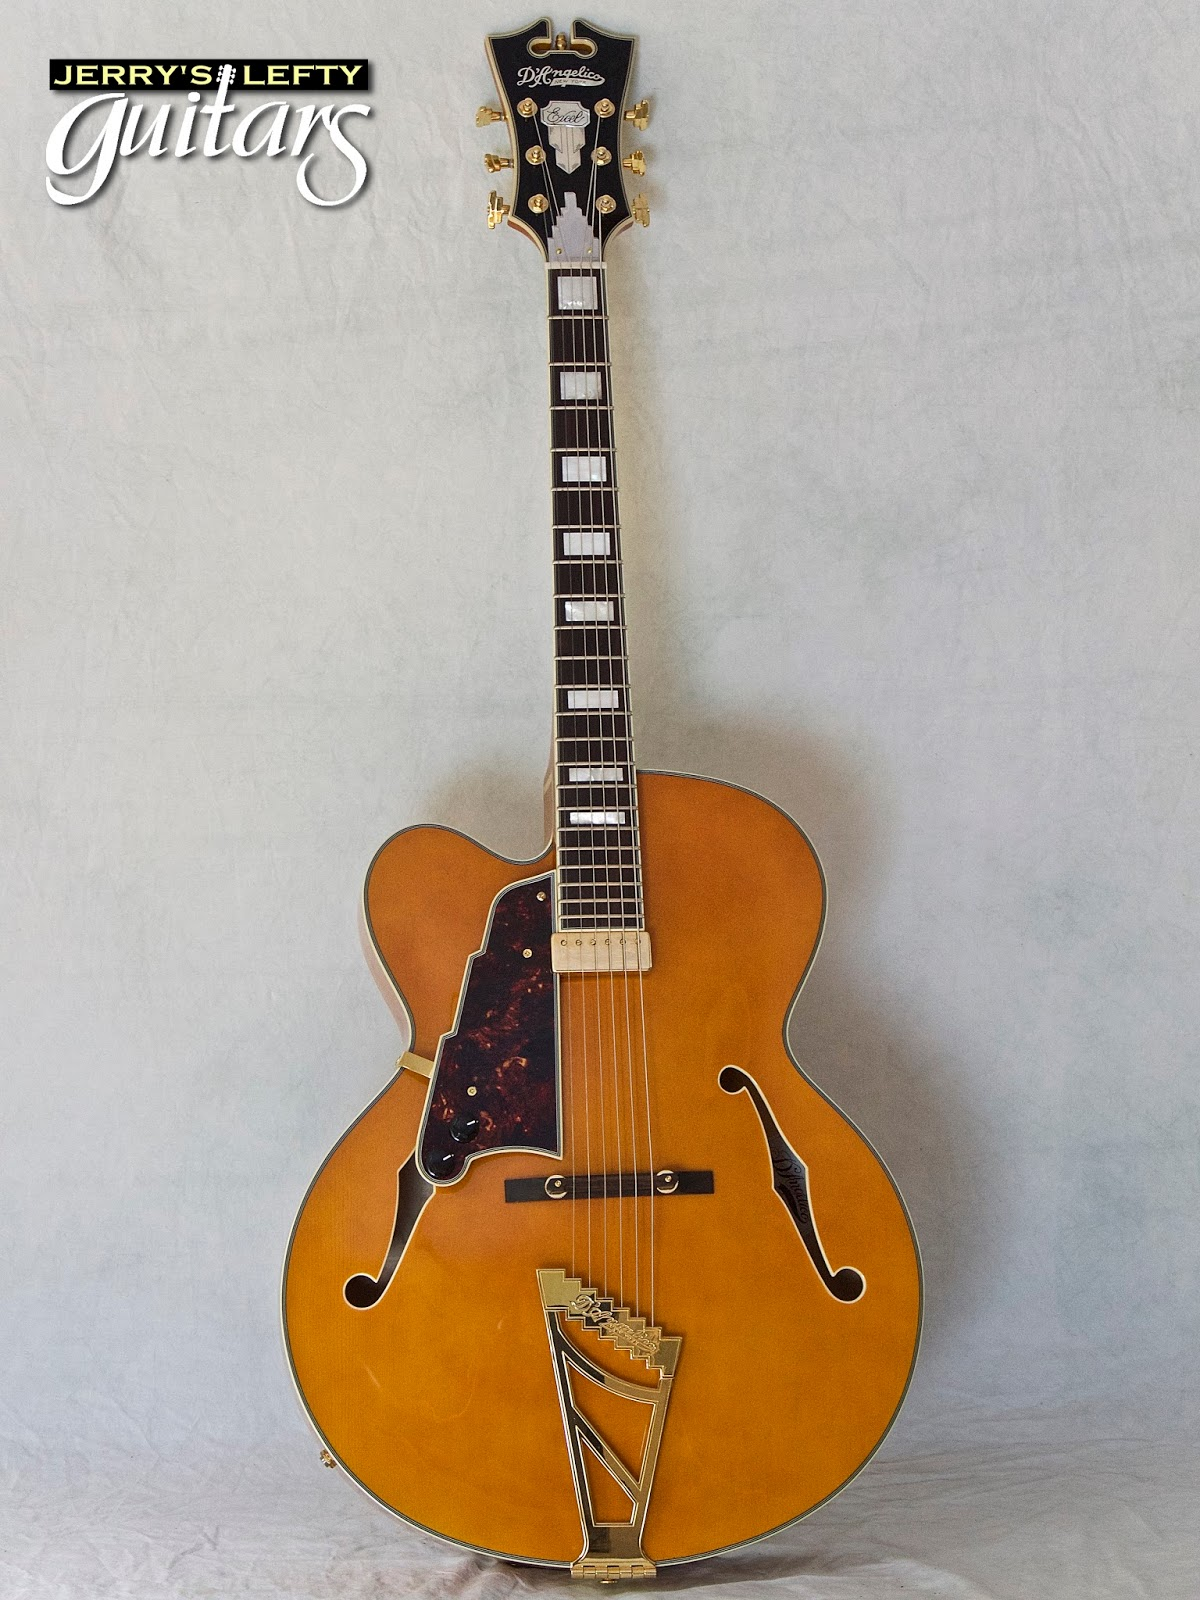 jerry 39 s lefty guitars newest guitar arrivals updated weekly d 39 angelico excel 1 used left. Black Bedroom Furniture Sets. Home Design Ideas